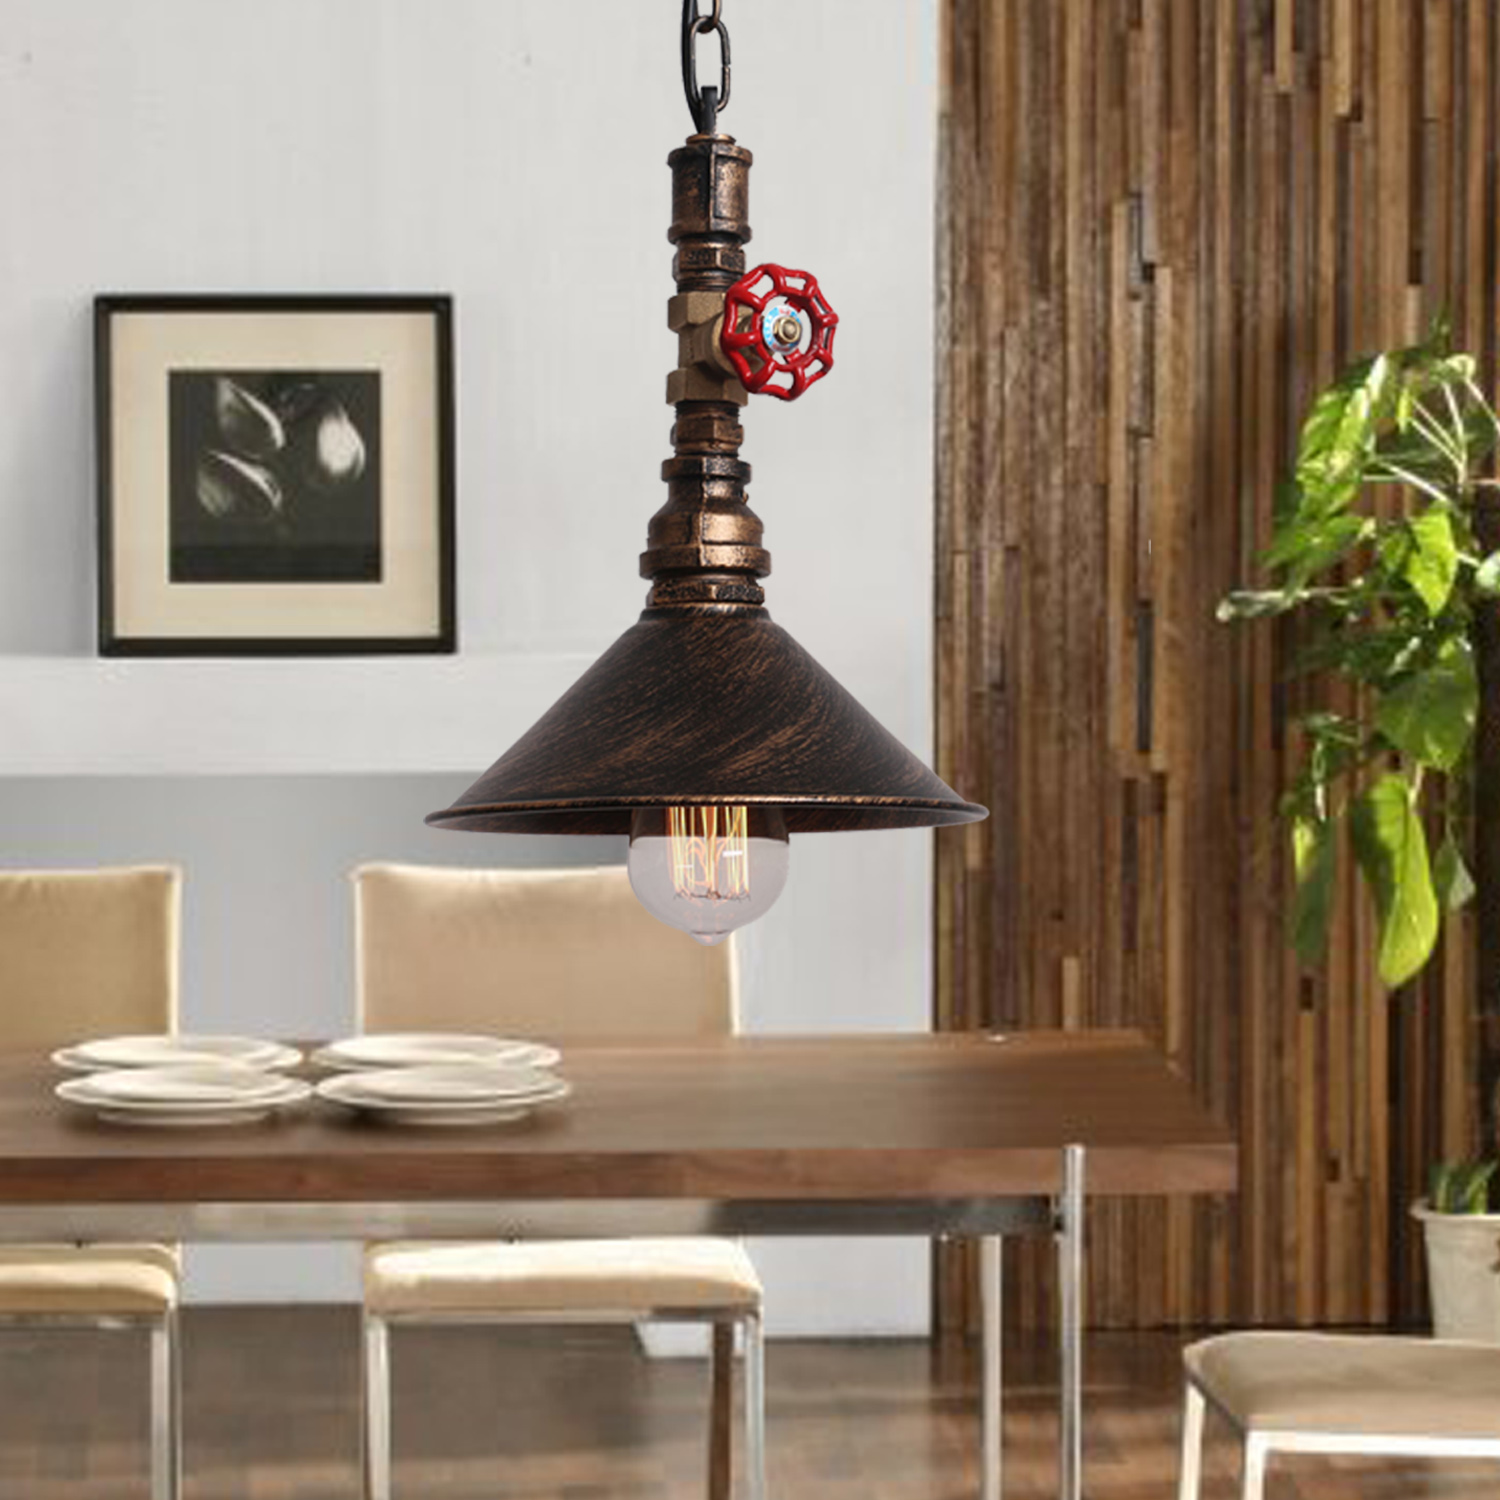 Rustic Industrial Pendant Lights Vintage Lamp Suspension Luminaire Water Pipe Chain Hanging light E27 220v For Decor Loft Lamp(China (Mainland))